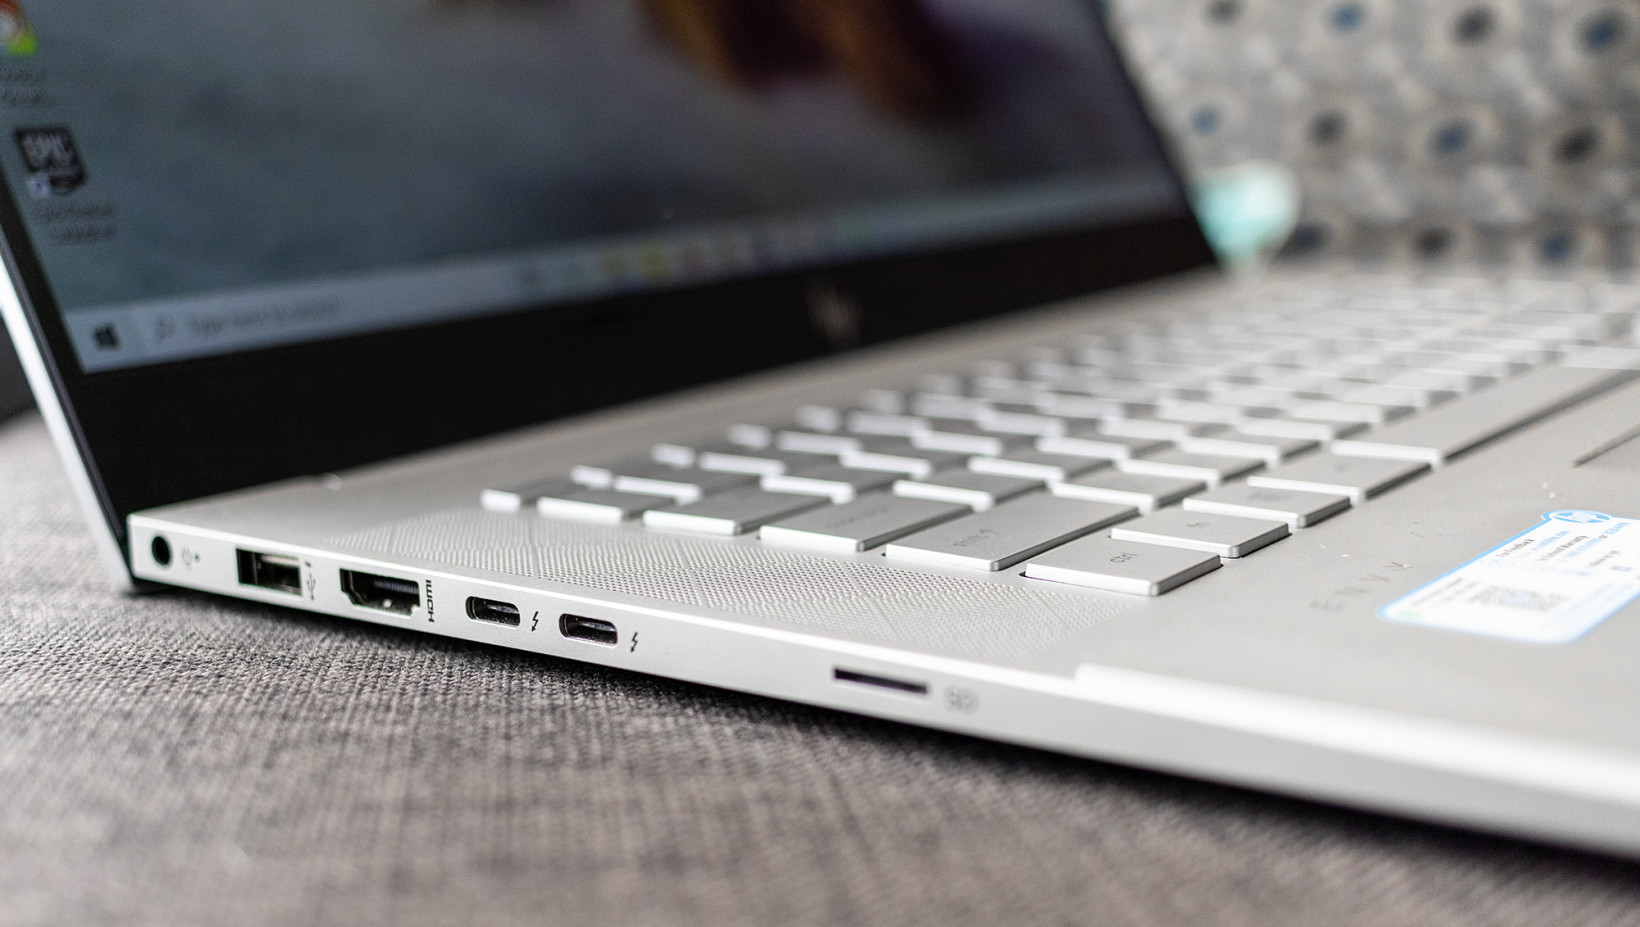 You get a nice selection of ports on the HP Envy 15, considering this is a slim-ish machine